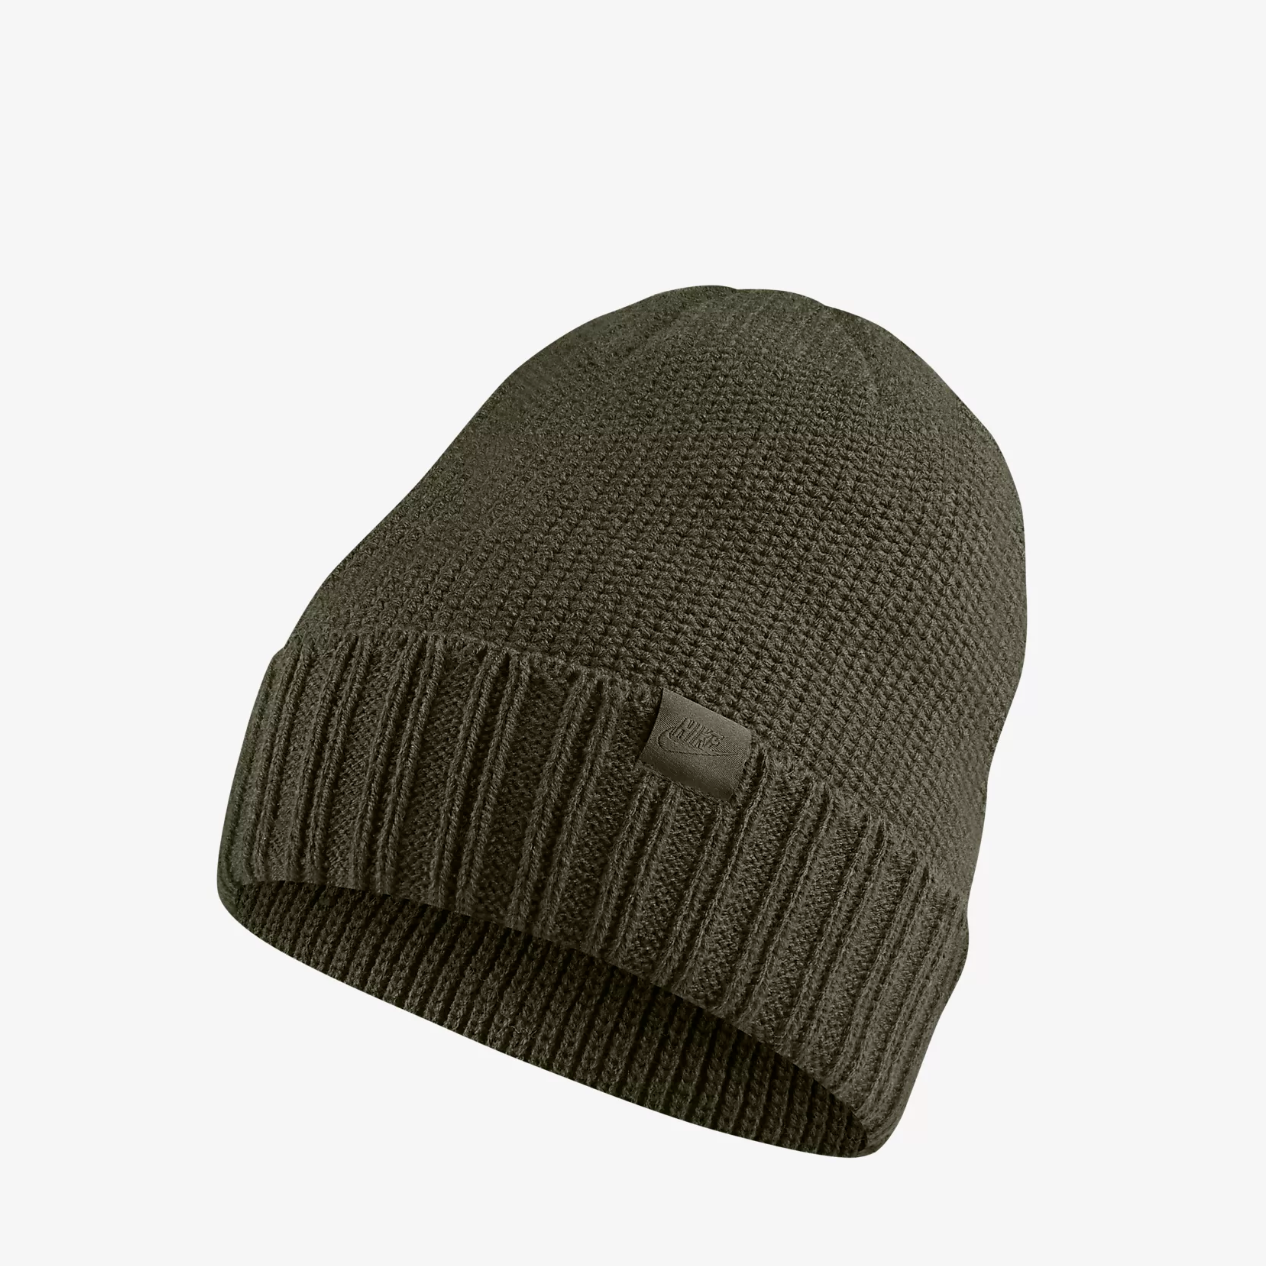 BEANIE - Keep him warm during the winter with this Nike beanie for $28.